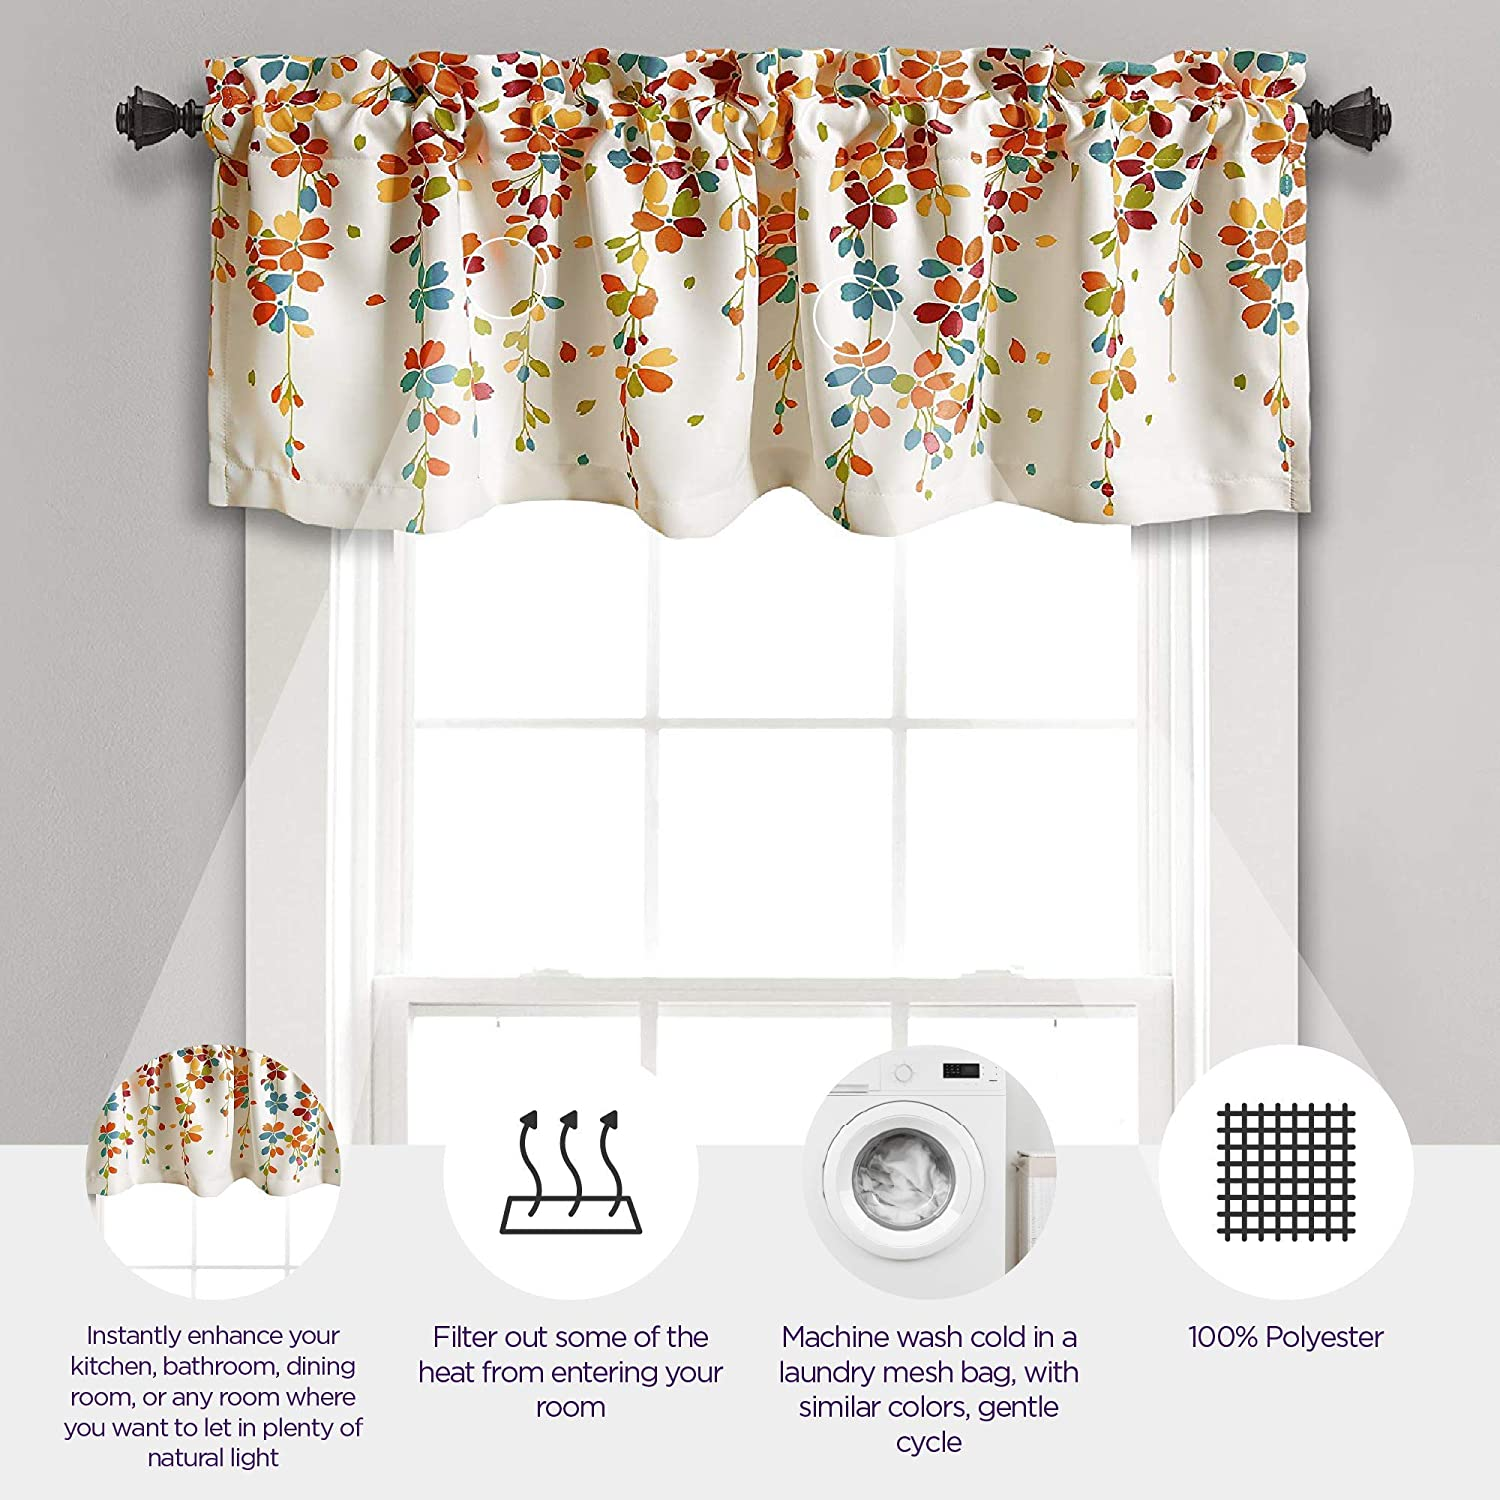 Amazon Com Lush Decor Weeping Flowers Turquoise And Tangerine Valance Curtain For Windows Turquoise Tangerine Home Kitchen